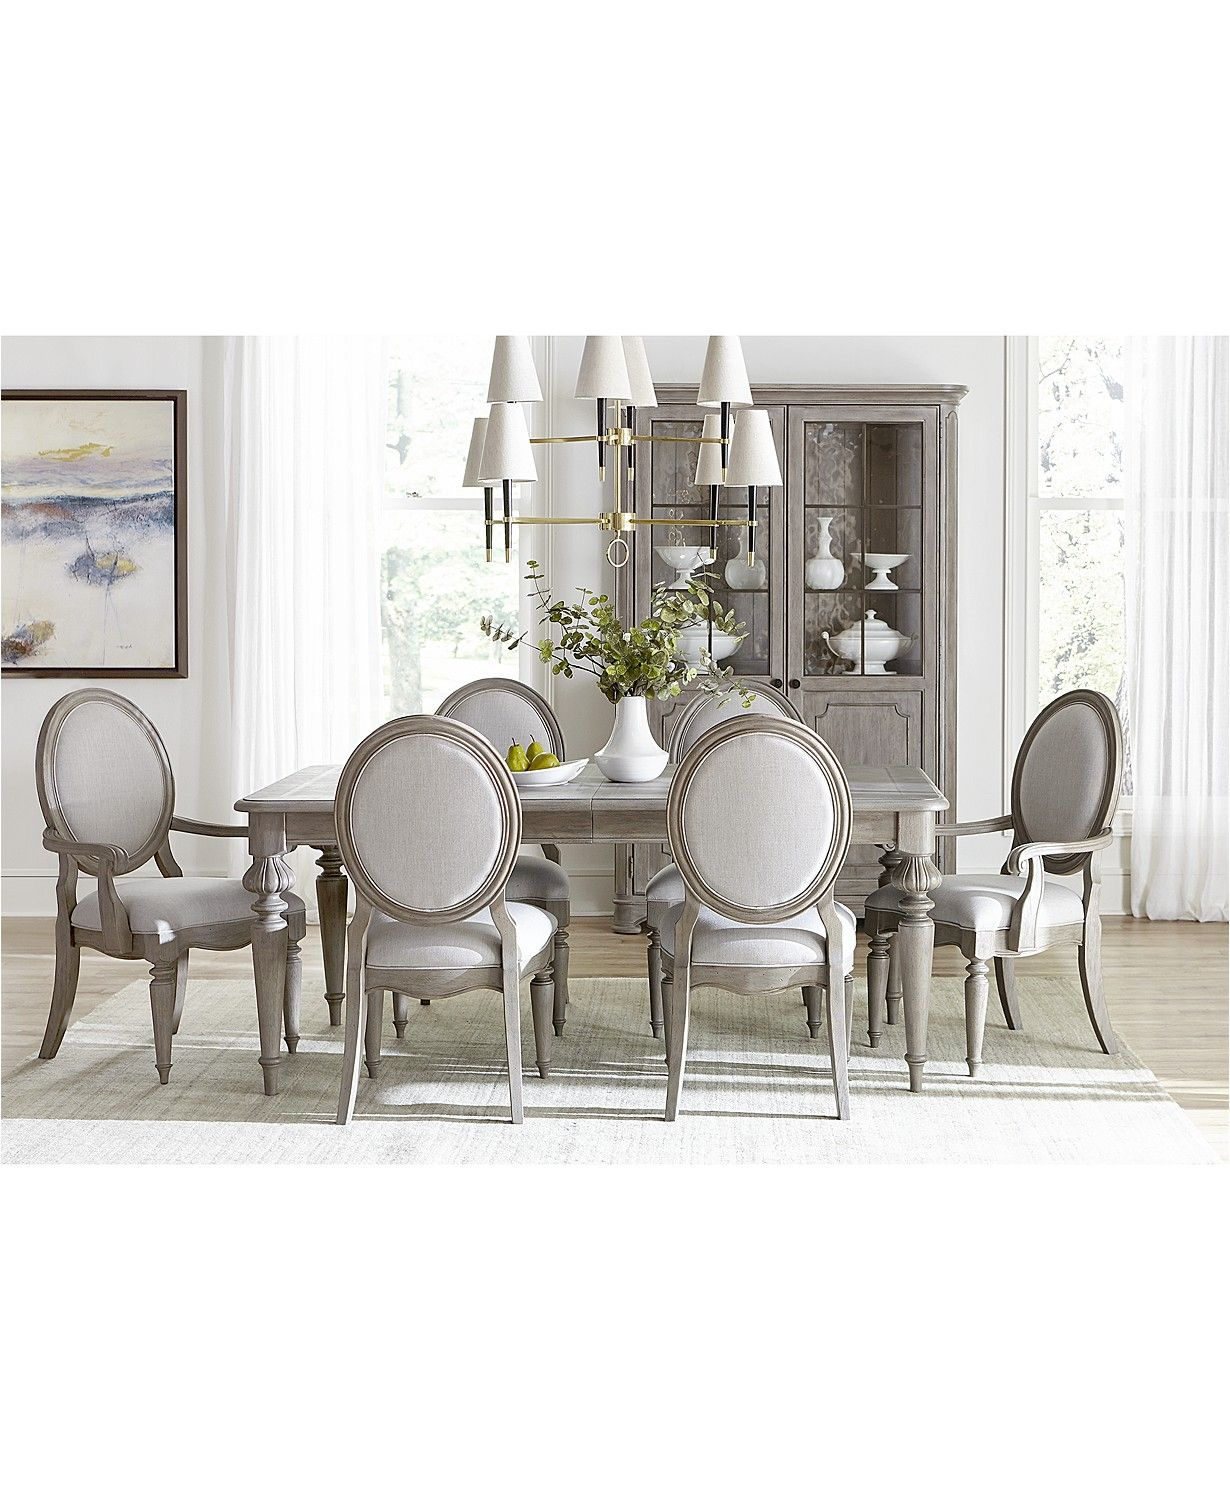 Furniture Elina Expandable Dining Furniture 7 Pc Set Dining Table 4 Upholstered Side Chairs 2 Upholstered Arm Chairs Created For Macy S Reviews Furniture